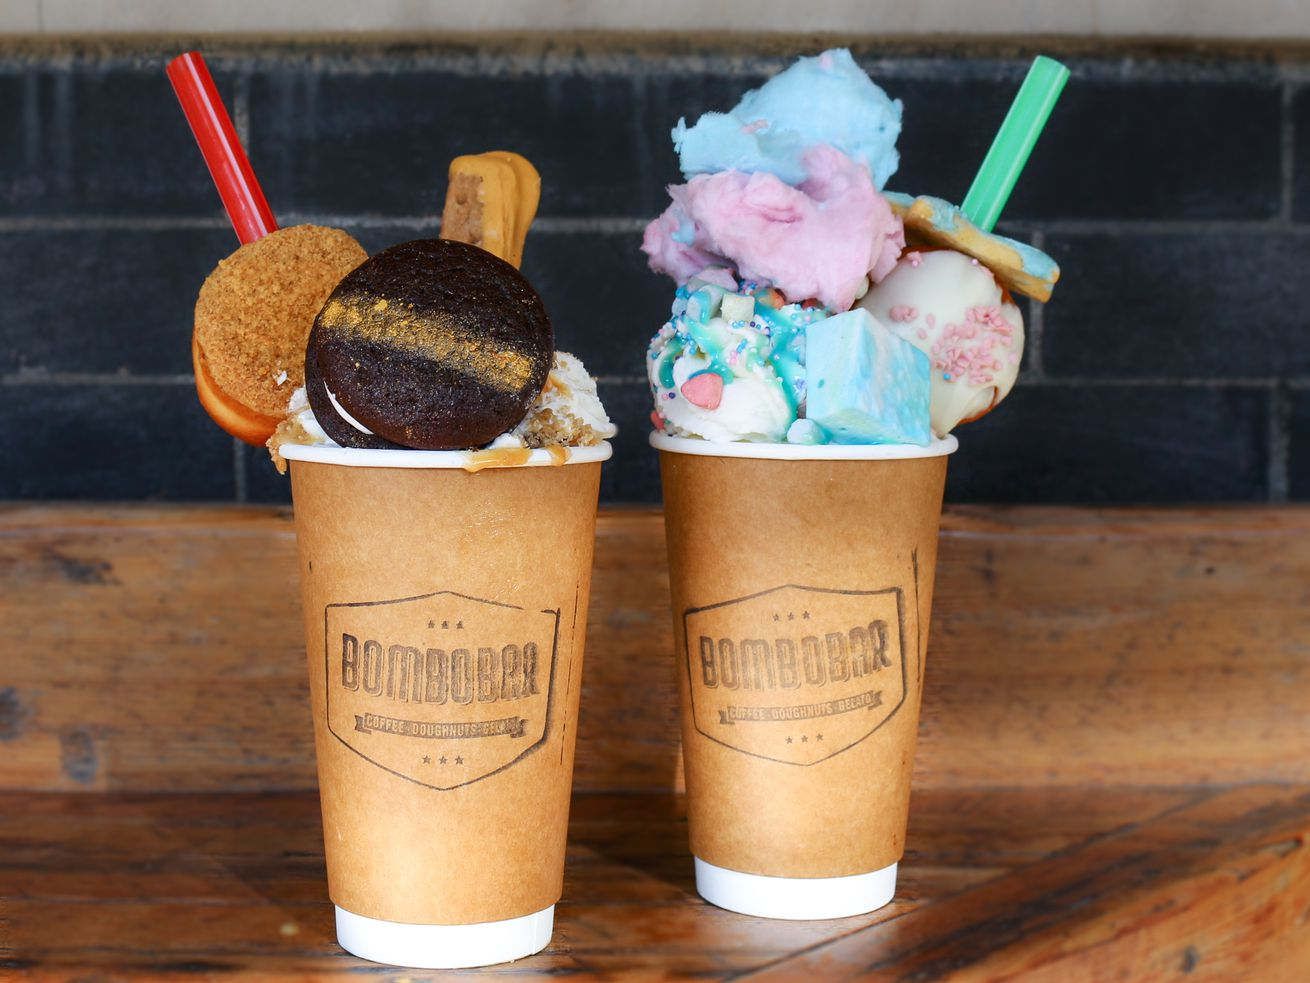 Hot chocolates with crazy garnishes are part of BomboBar's creed.